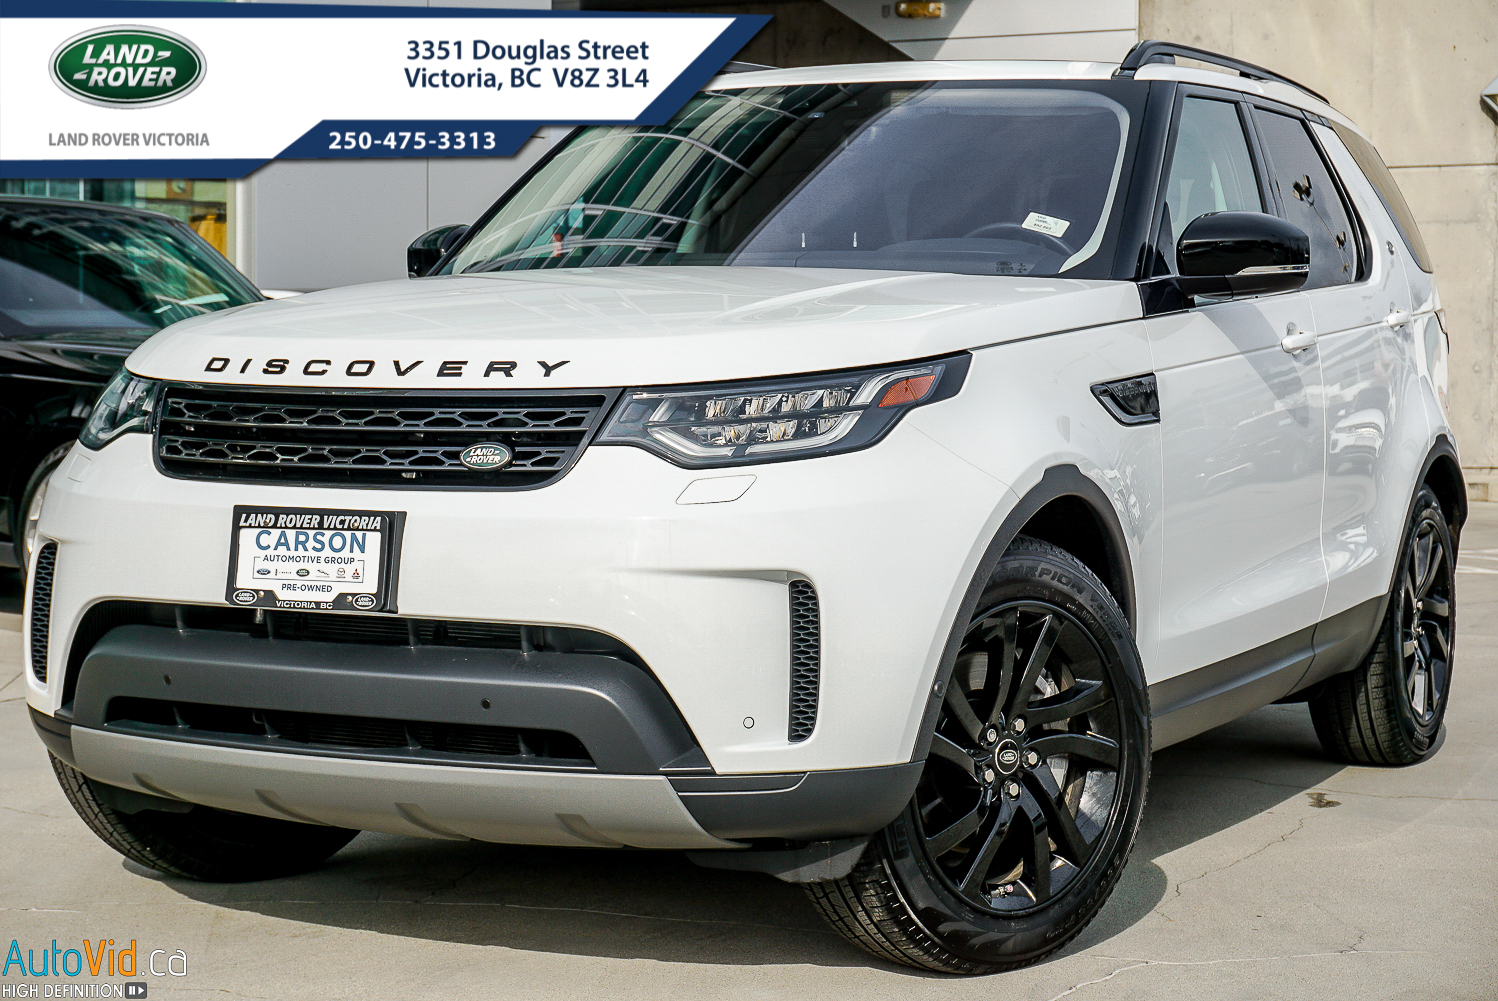 9lr402325 2019 Land Rover Discovery Se White 01 127 27